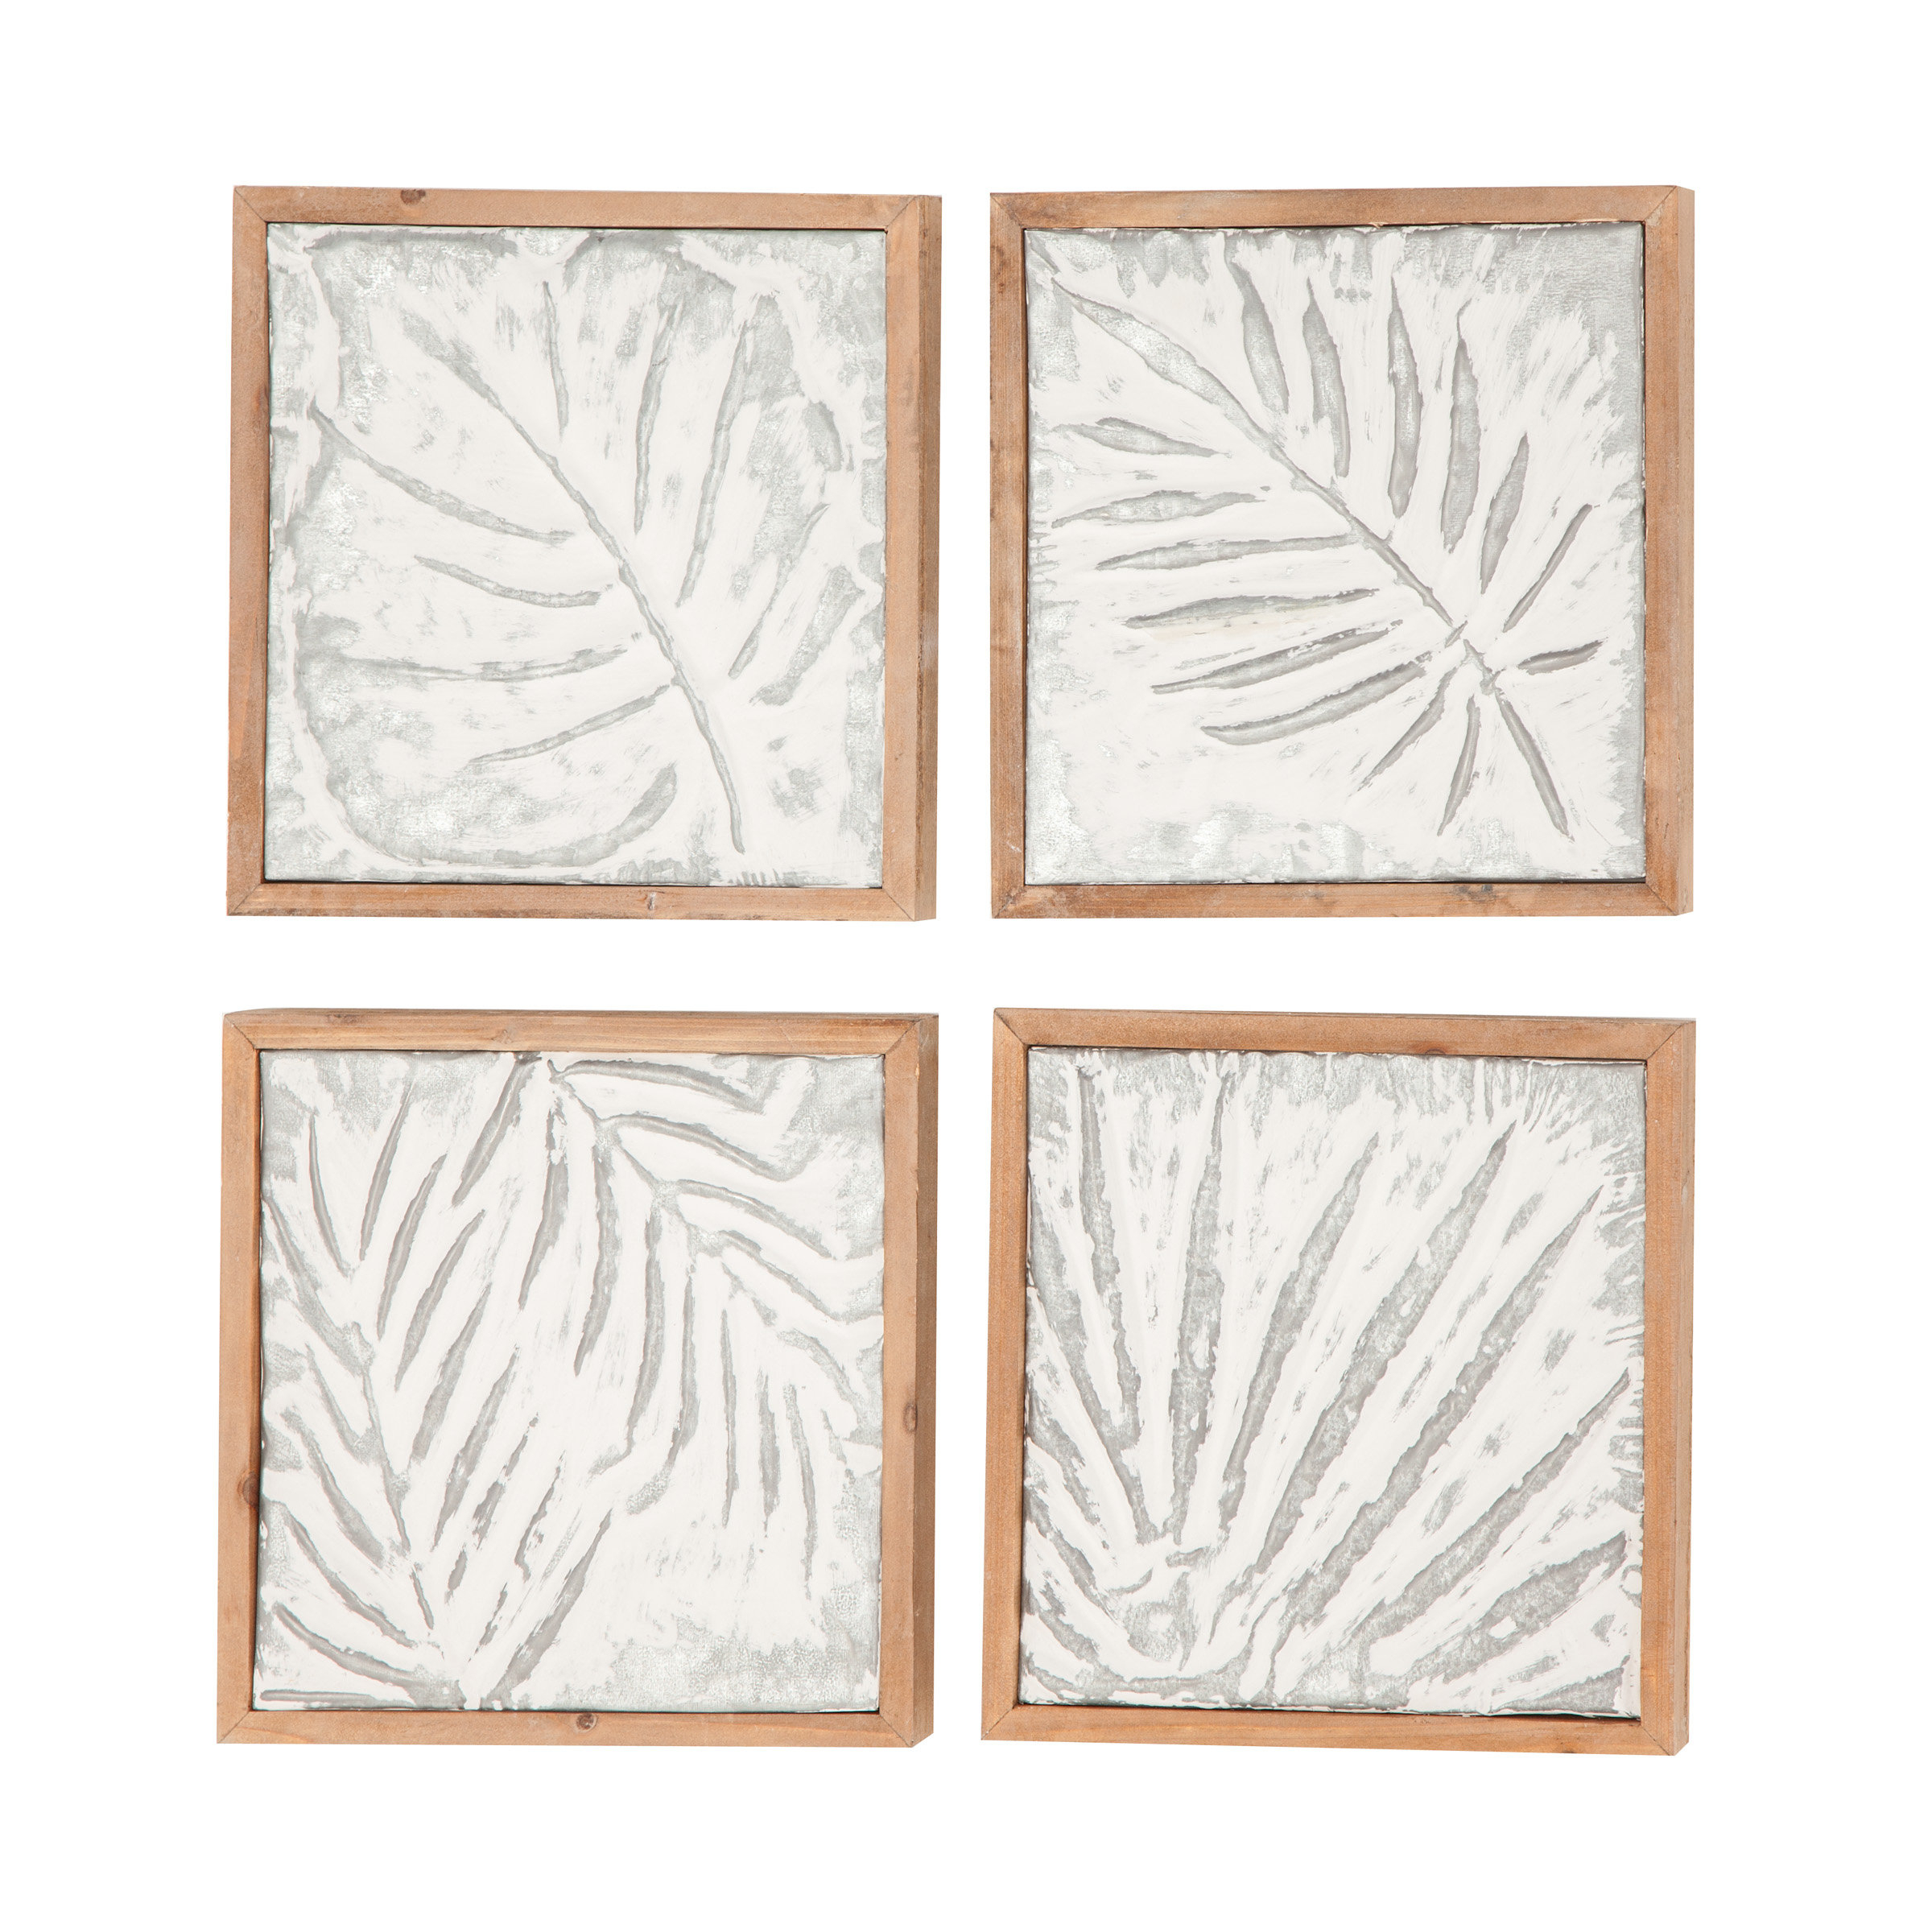 Goodfellow 4 Piece Wood Leaf Wall Decor Set & Reviews | Joss with 2 Piece Trigg Wall Decor Sets (Set of 2) (Image 9 of 30)